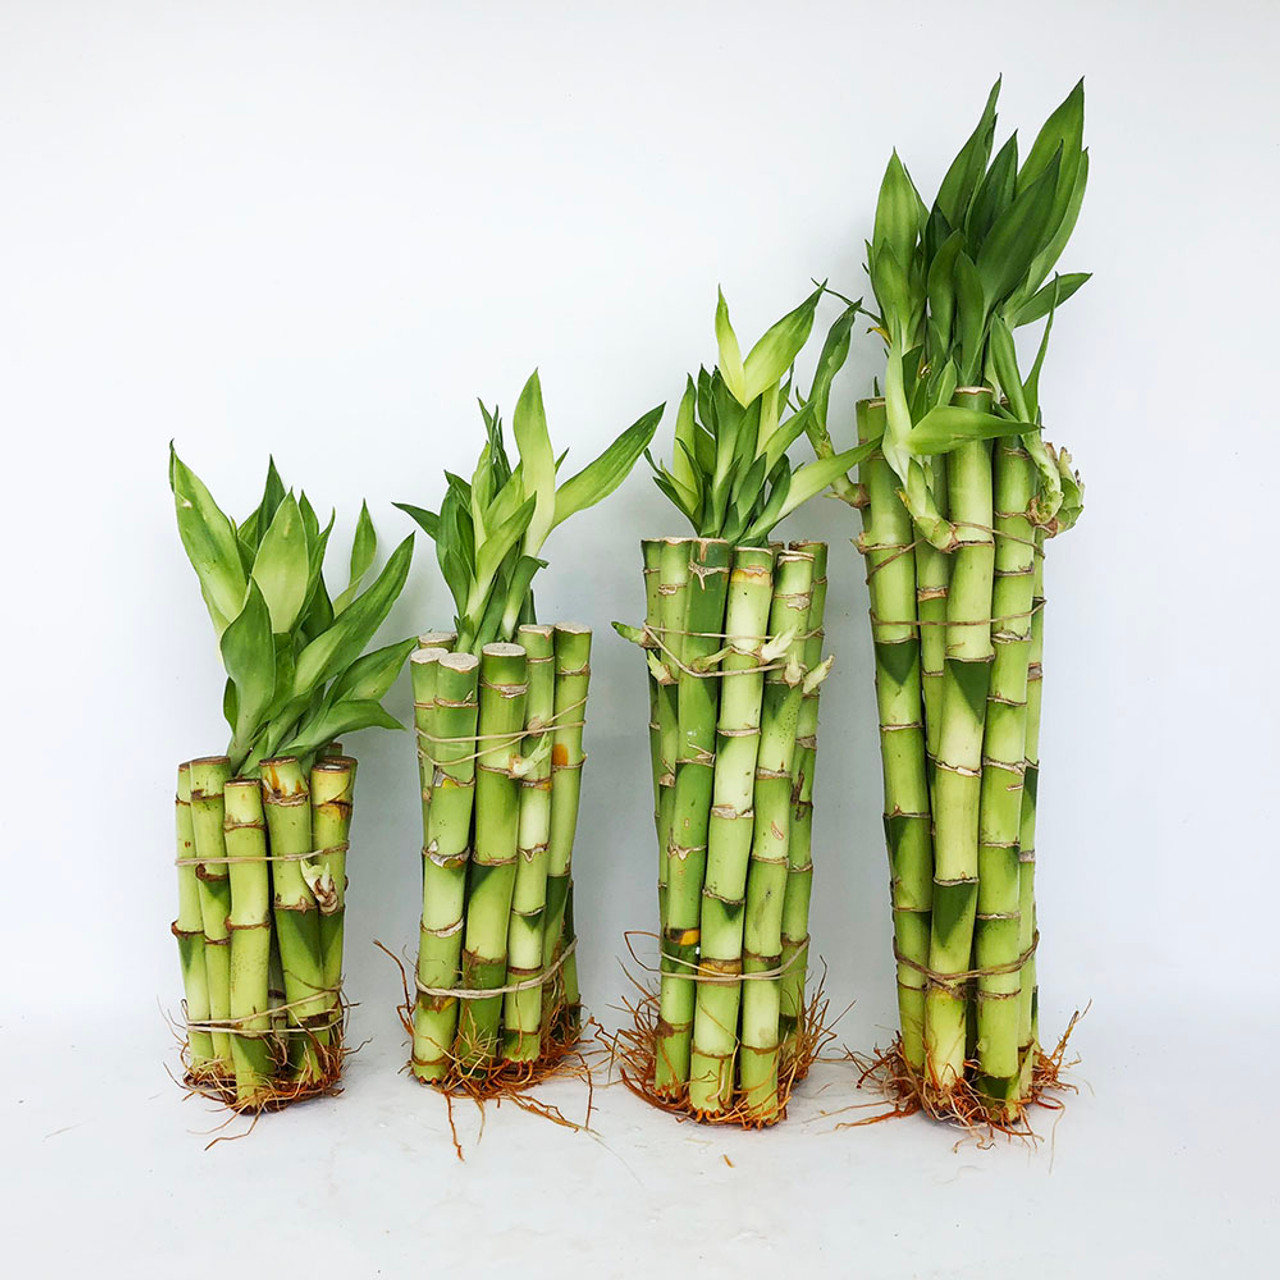 4 Straight Lucky Bamboo Stalks Bonsai Outlet